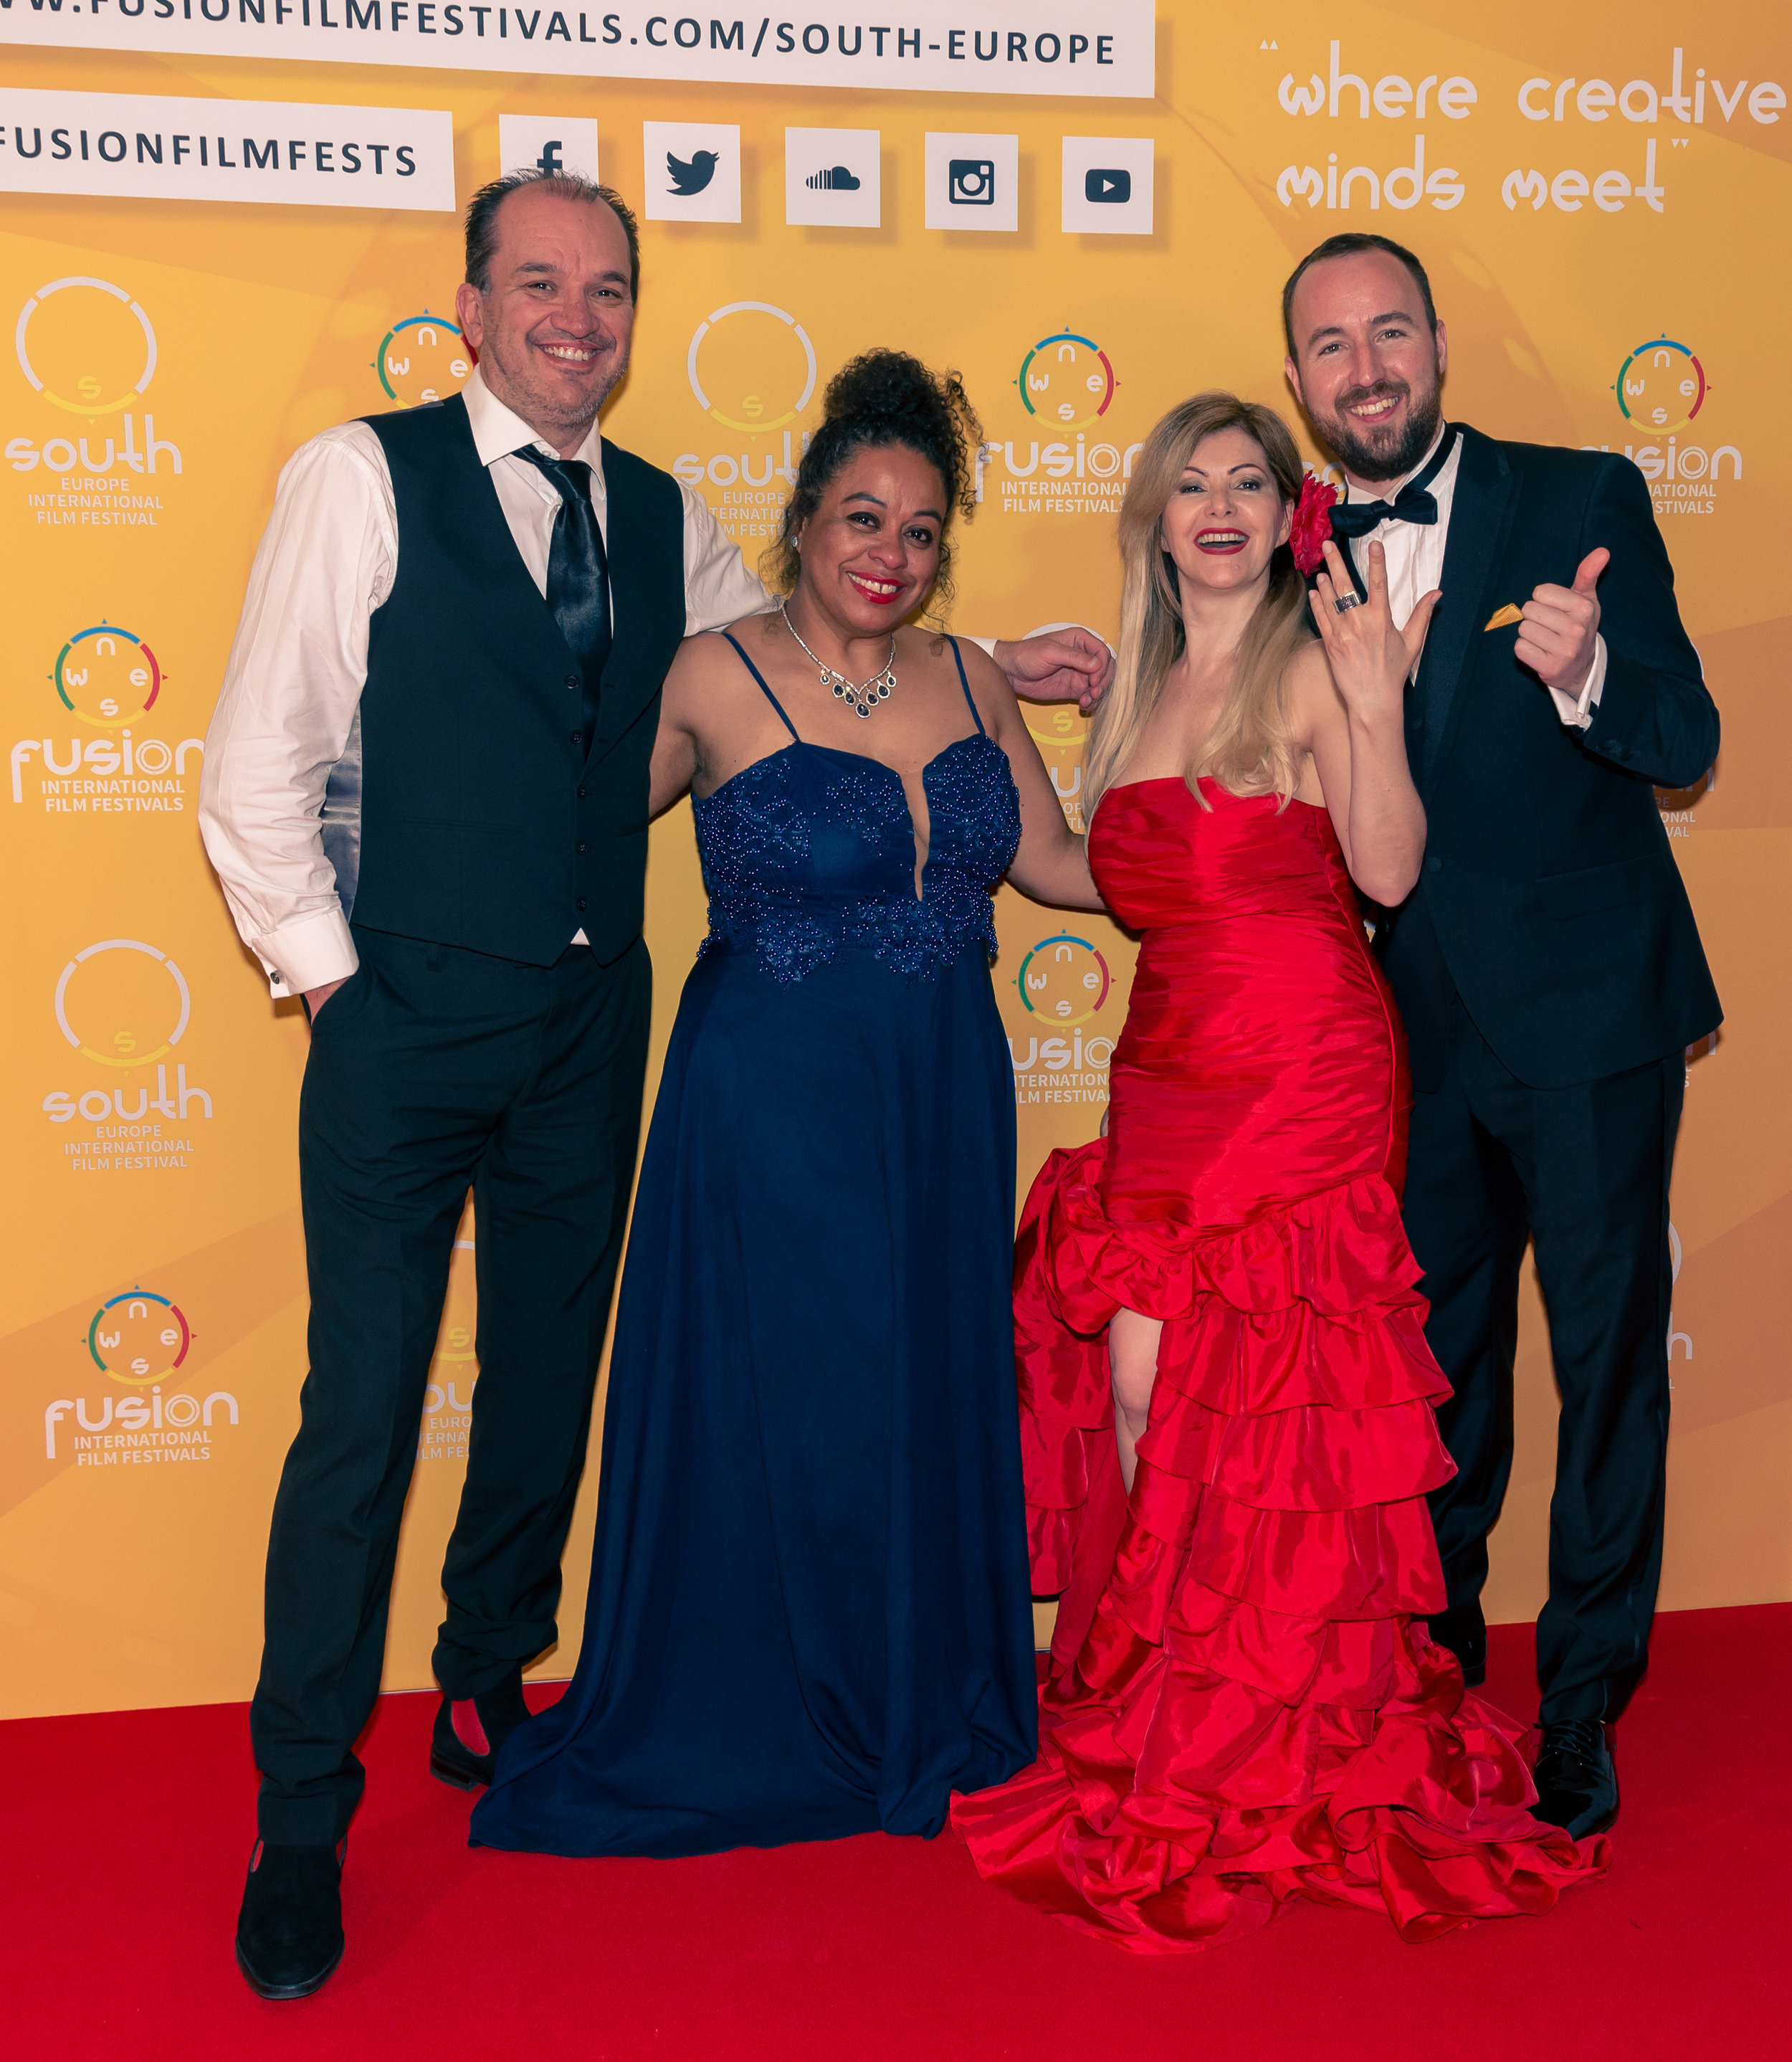 Steve Grossmith, Tania Rodrigues, Hanni Bergesch, and Dan Hickford at the South Europe International Film Festival in Valencia on May 11, 2019    Courtesy of Stuart Watson